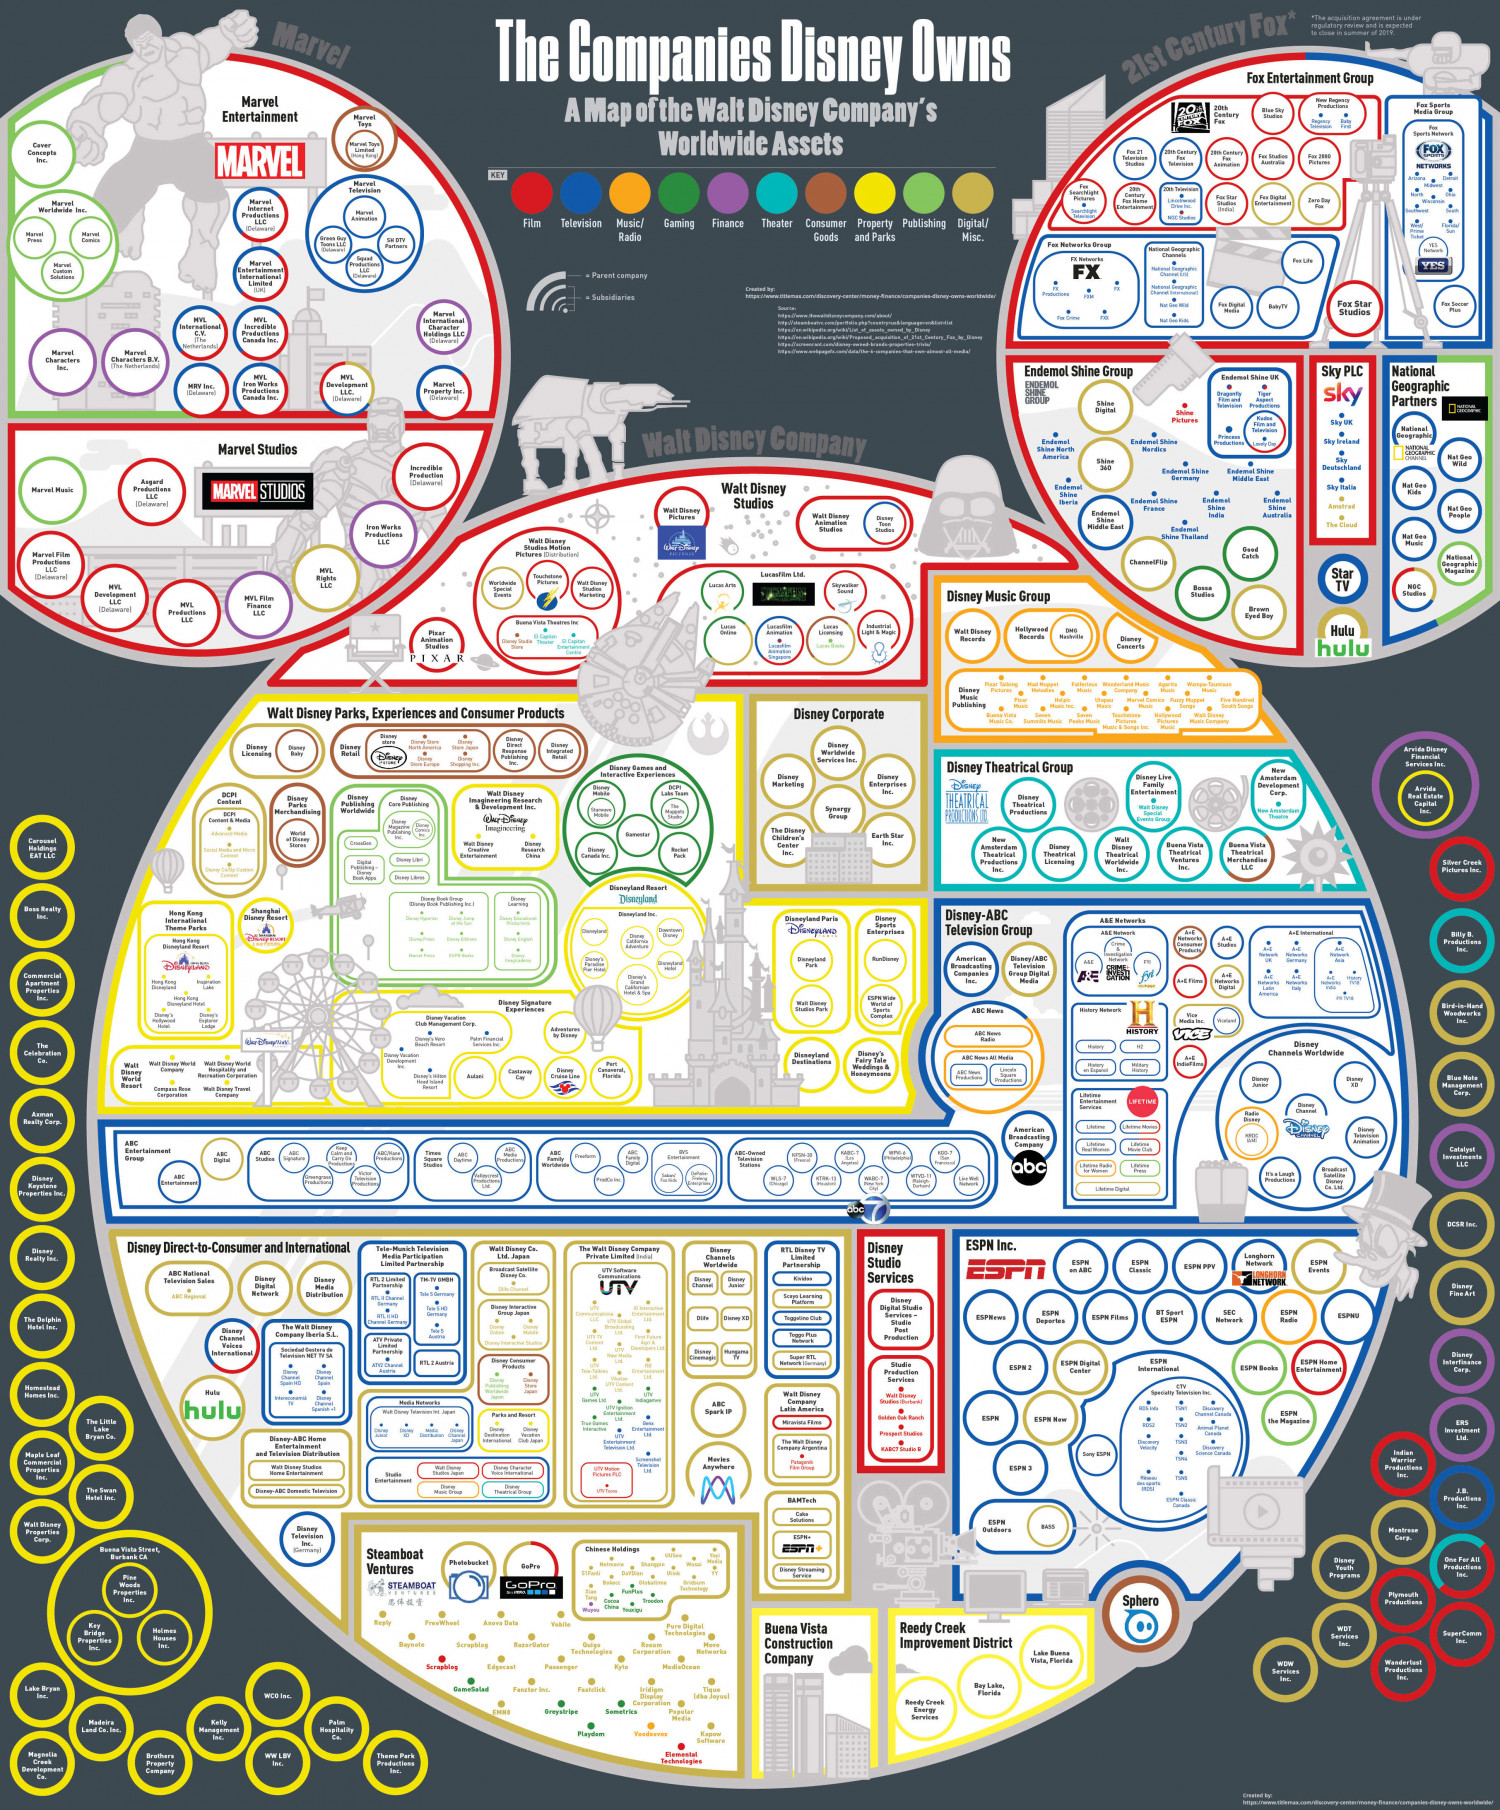 The Companies Disney Owns: A Map of Disney's Worldwide Assets  Infographic